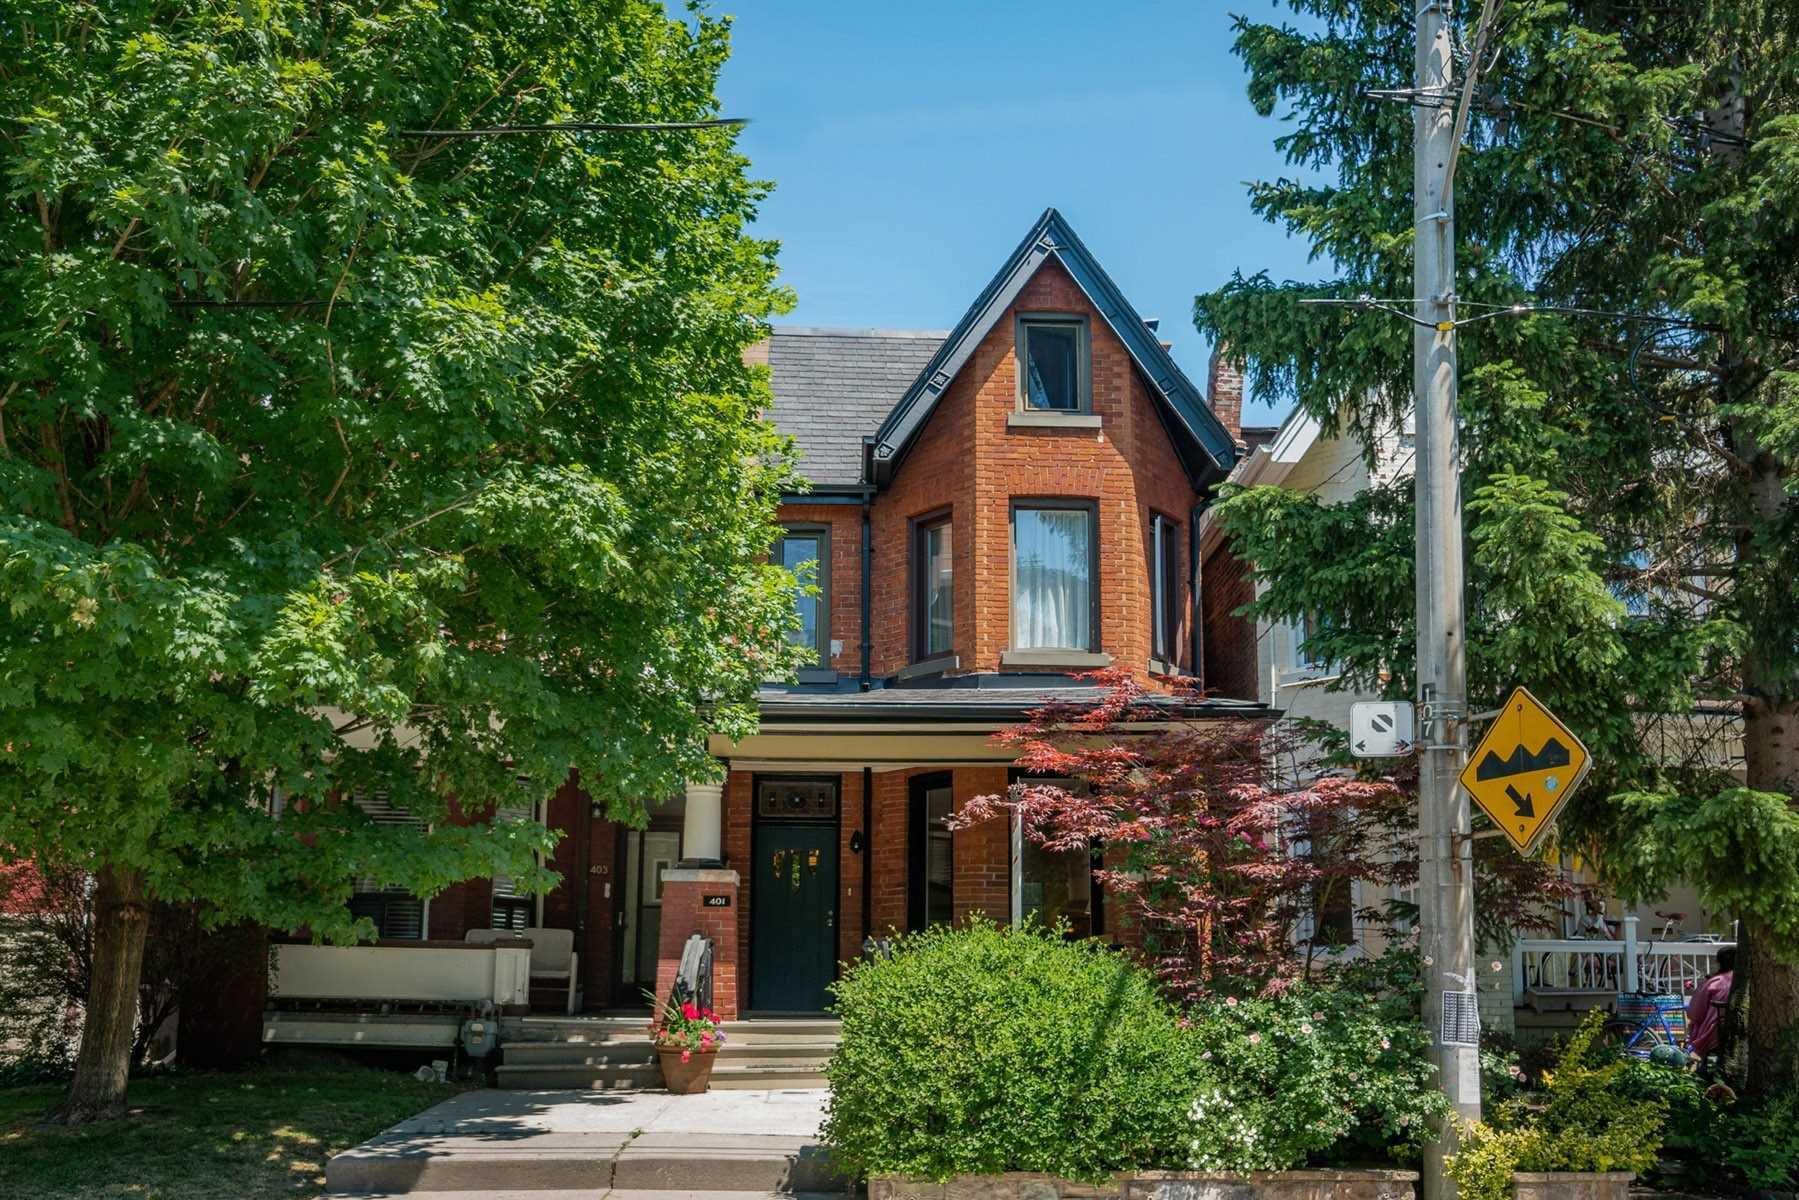 Main Photo: 401 Shaw Street in Toronto: Trinity-Bellwoods House (3-Storey) for sale (Toronto C01)  : MLS®# C4804197